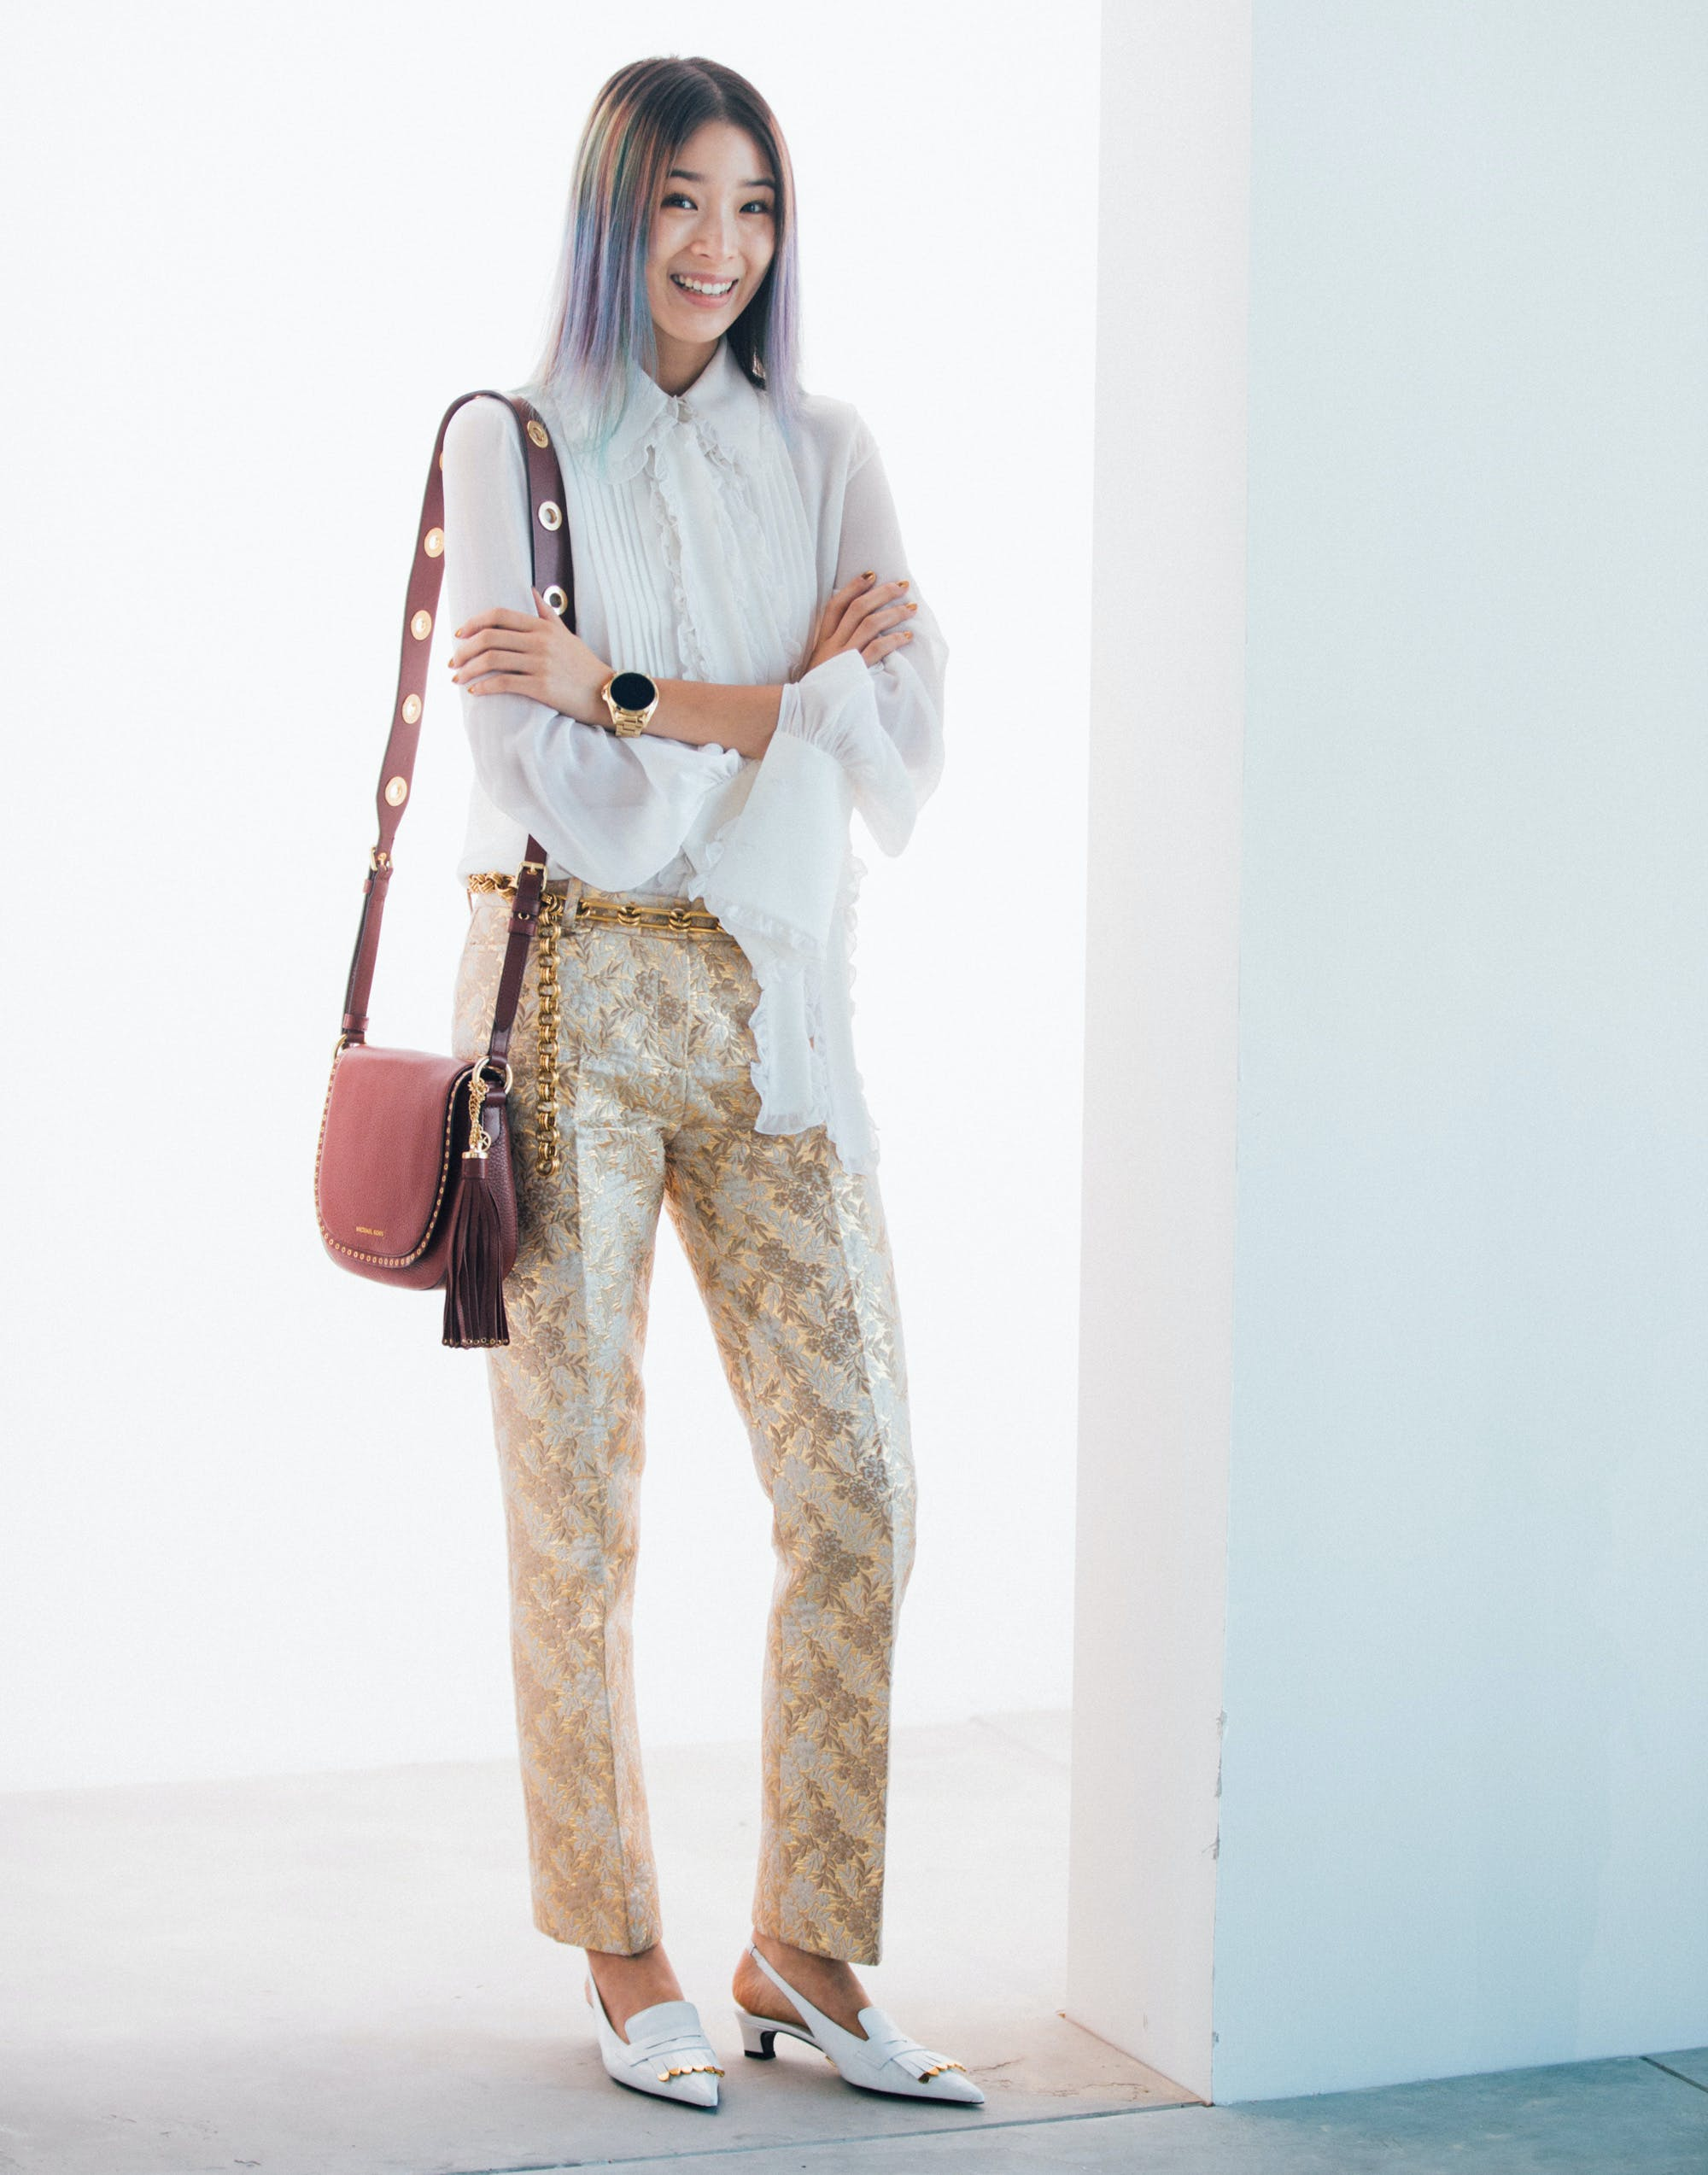 woman wearing snakeskin pants